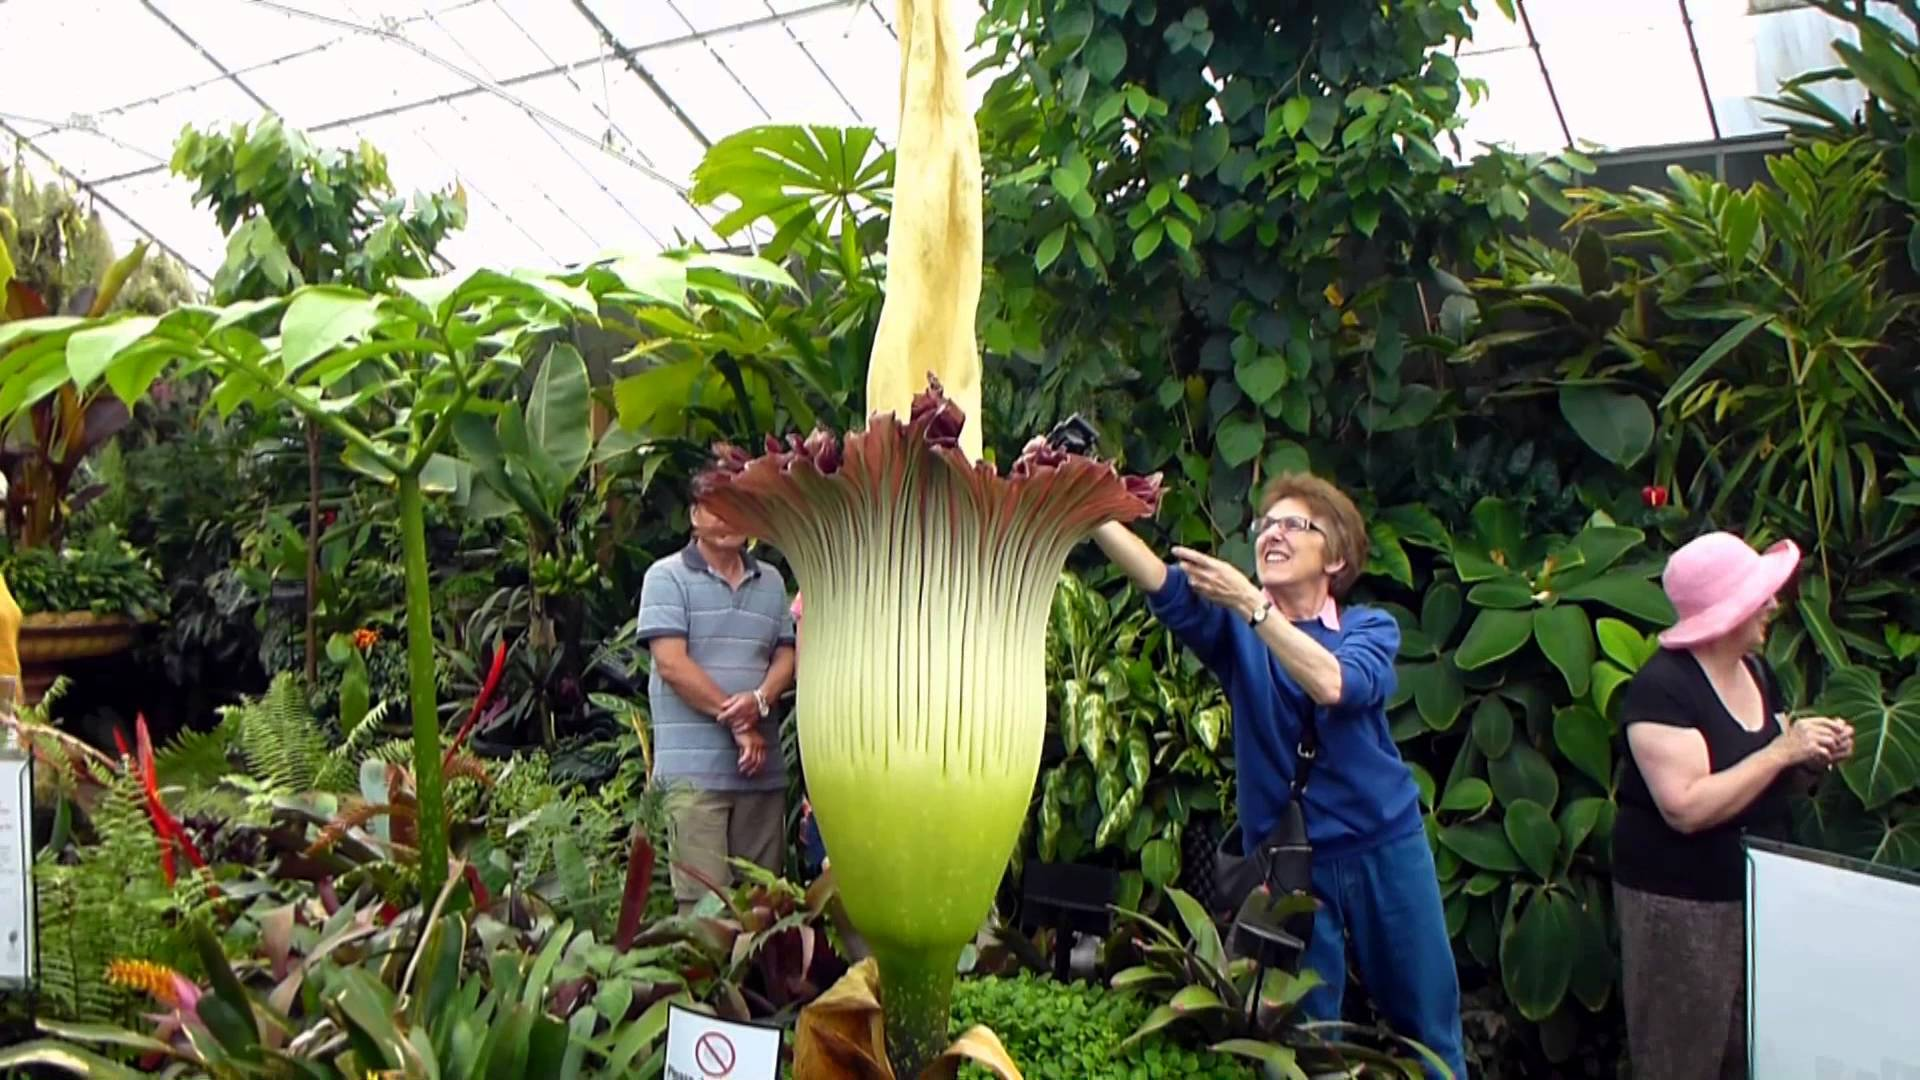 Worlds Largest Flower Titan Arum With Smell Of Rotting